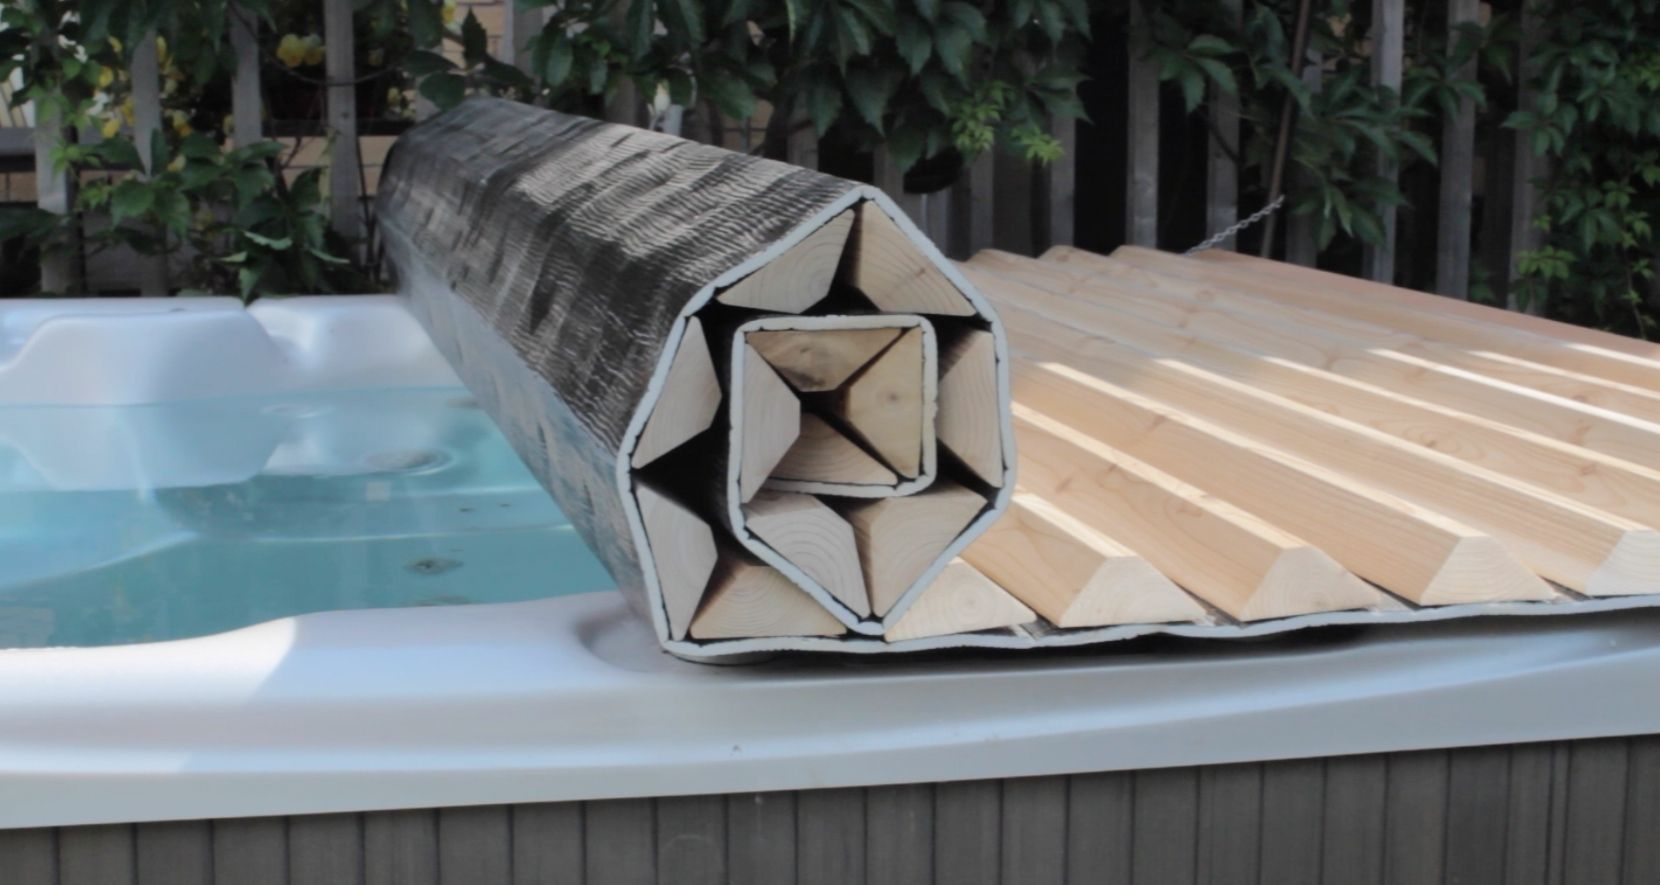 Pool Abdeckung Diy We Can Custom Make A Roll Up Hot Tub Cover For Just About